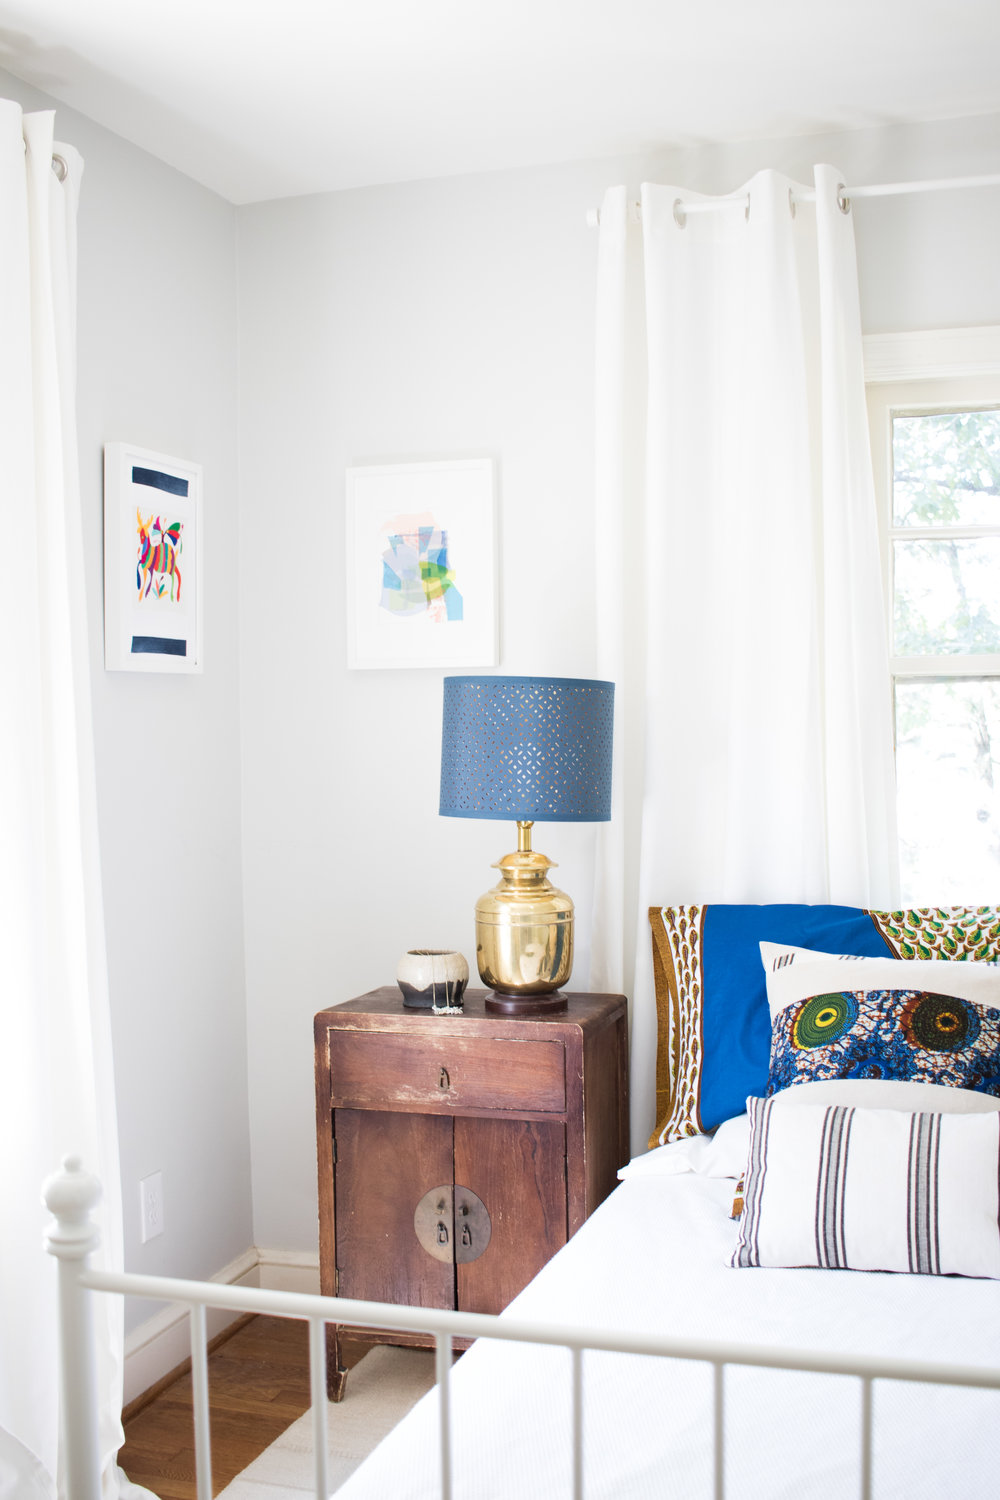 The night stands are from Korea. It's not an antique, but it looks like it from our use!